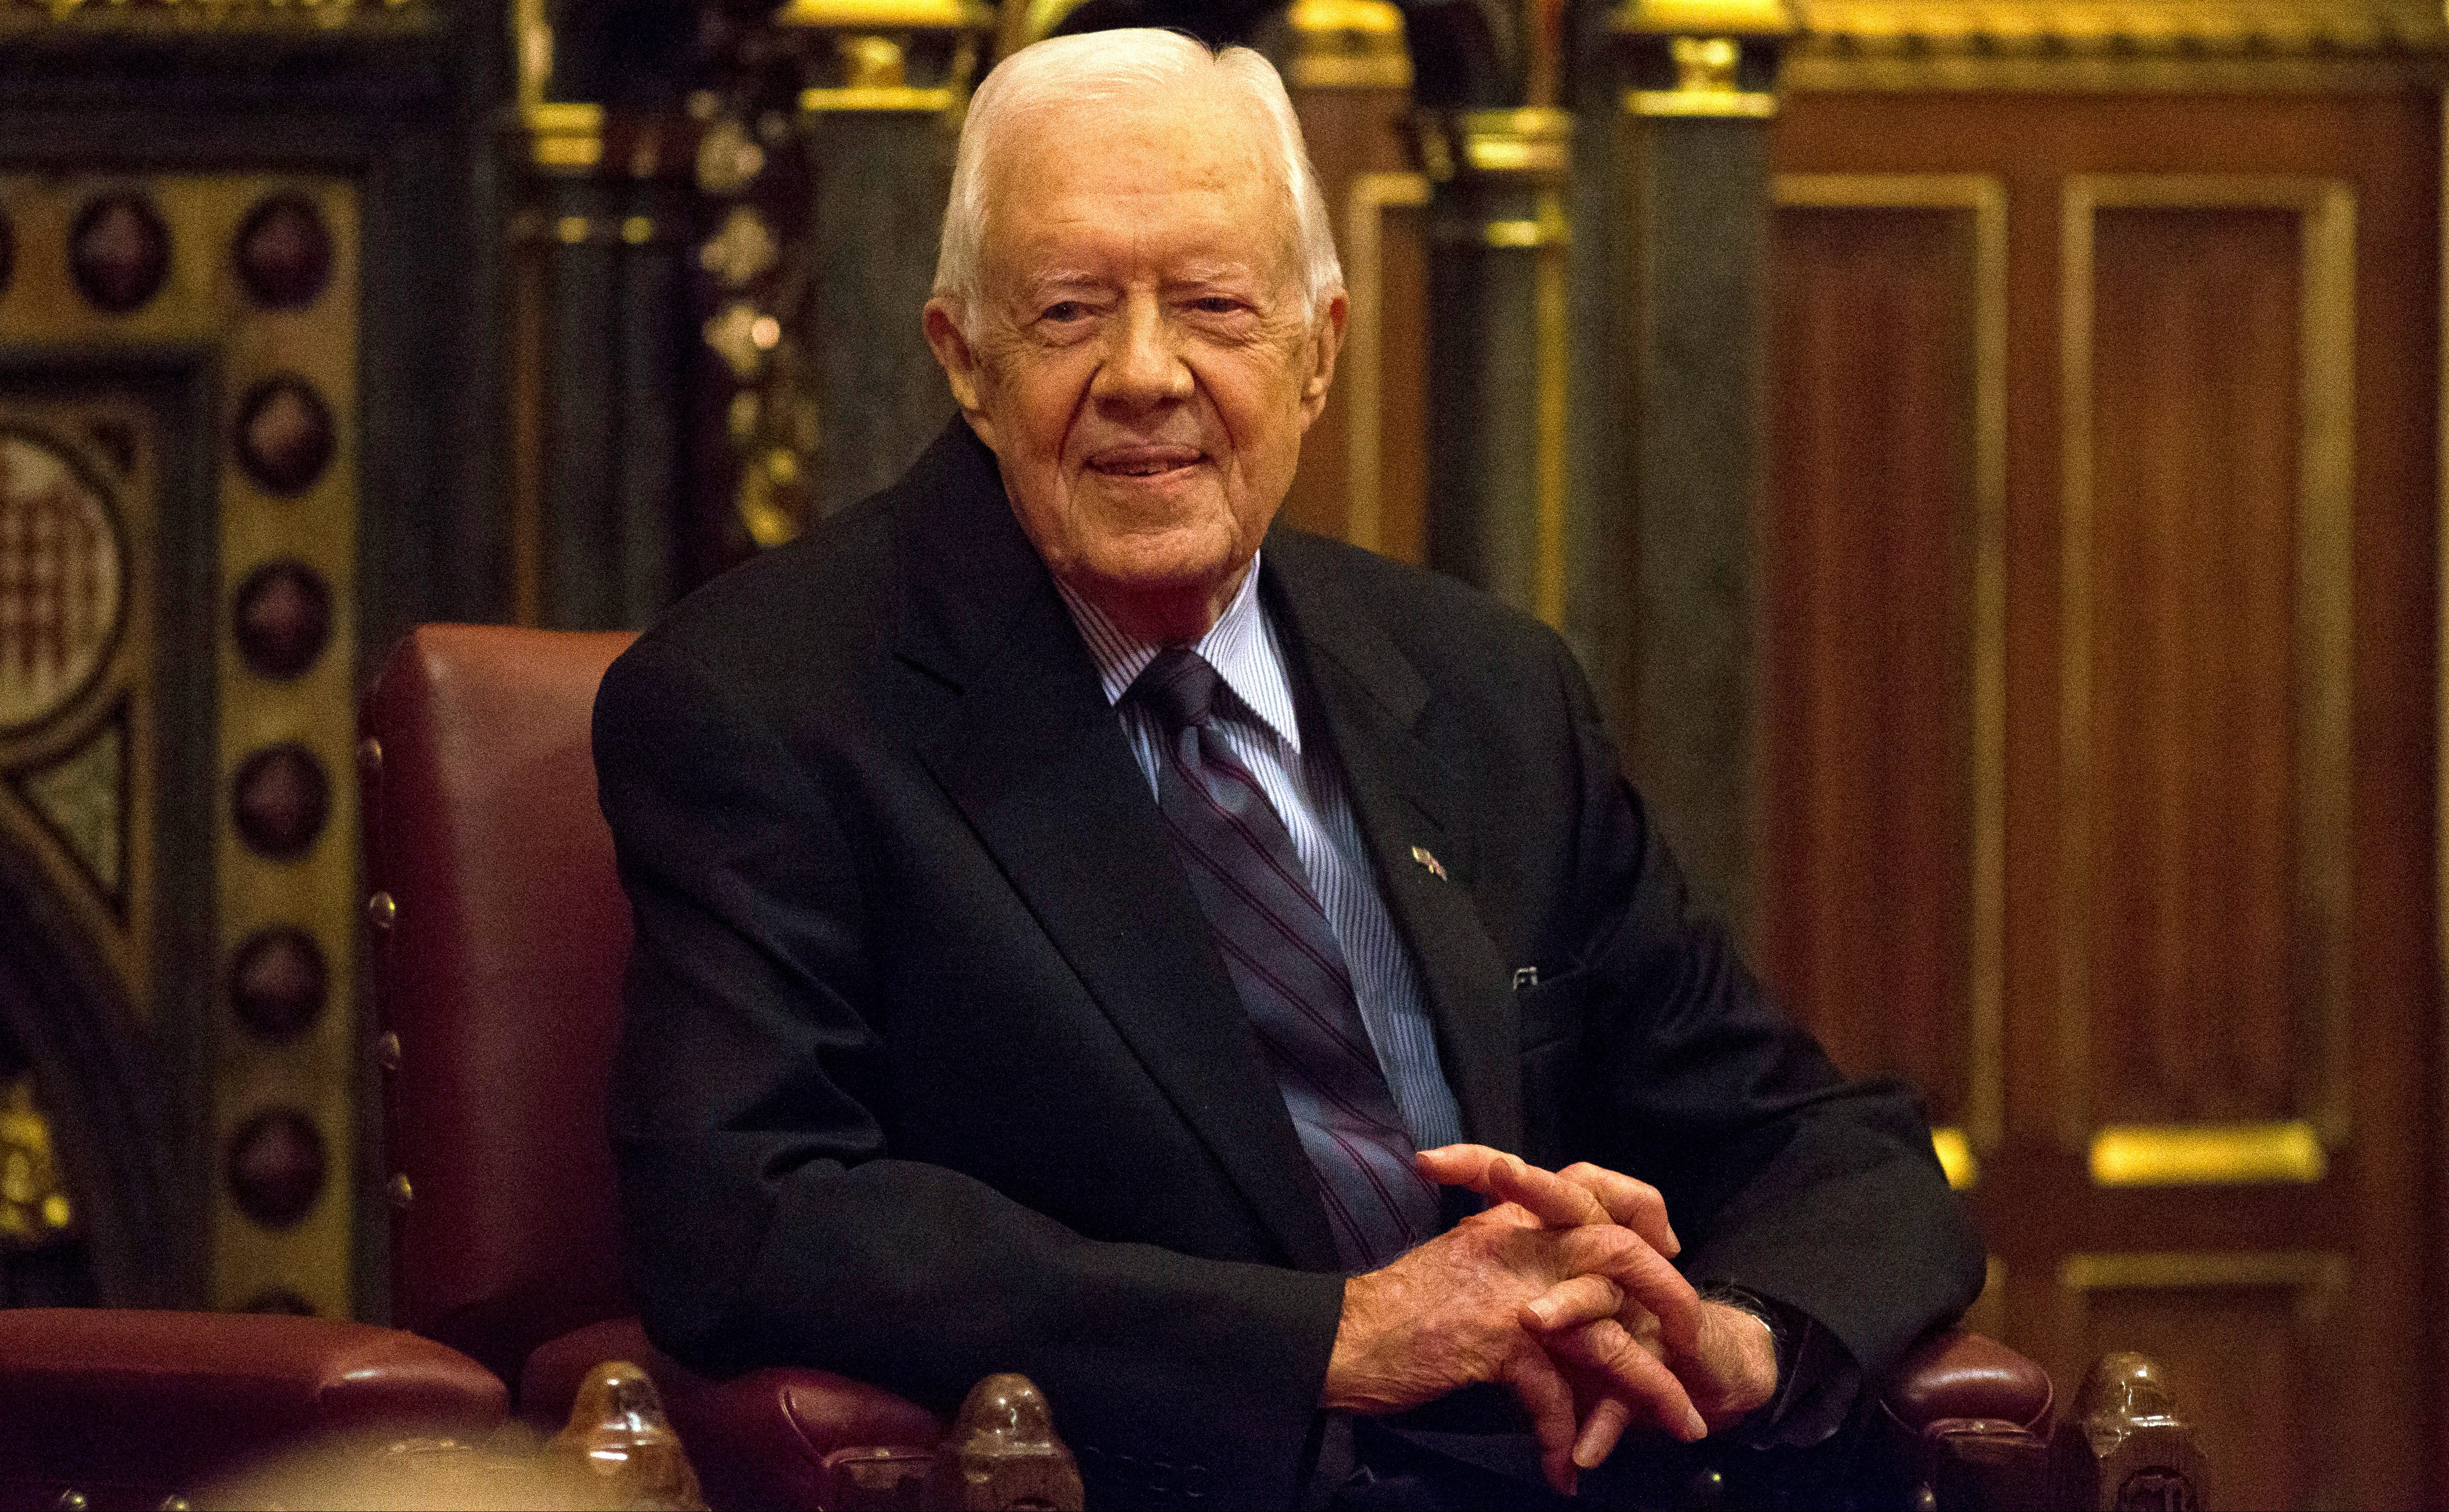 FILE PHOTO - Former U.S. President Jimmy Carter sits after delivering a lecture on the eradication of the Guinea worm, at the House of Lords in London, Britain February 3, 2016.